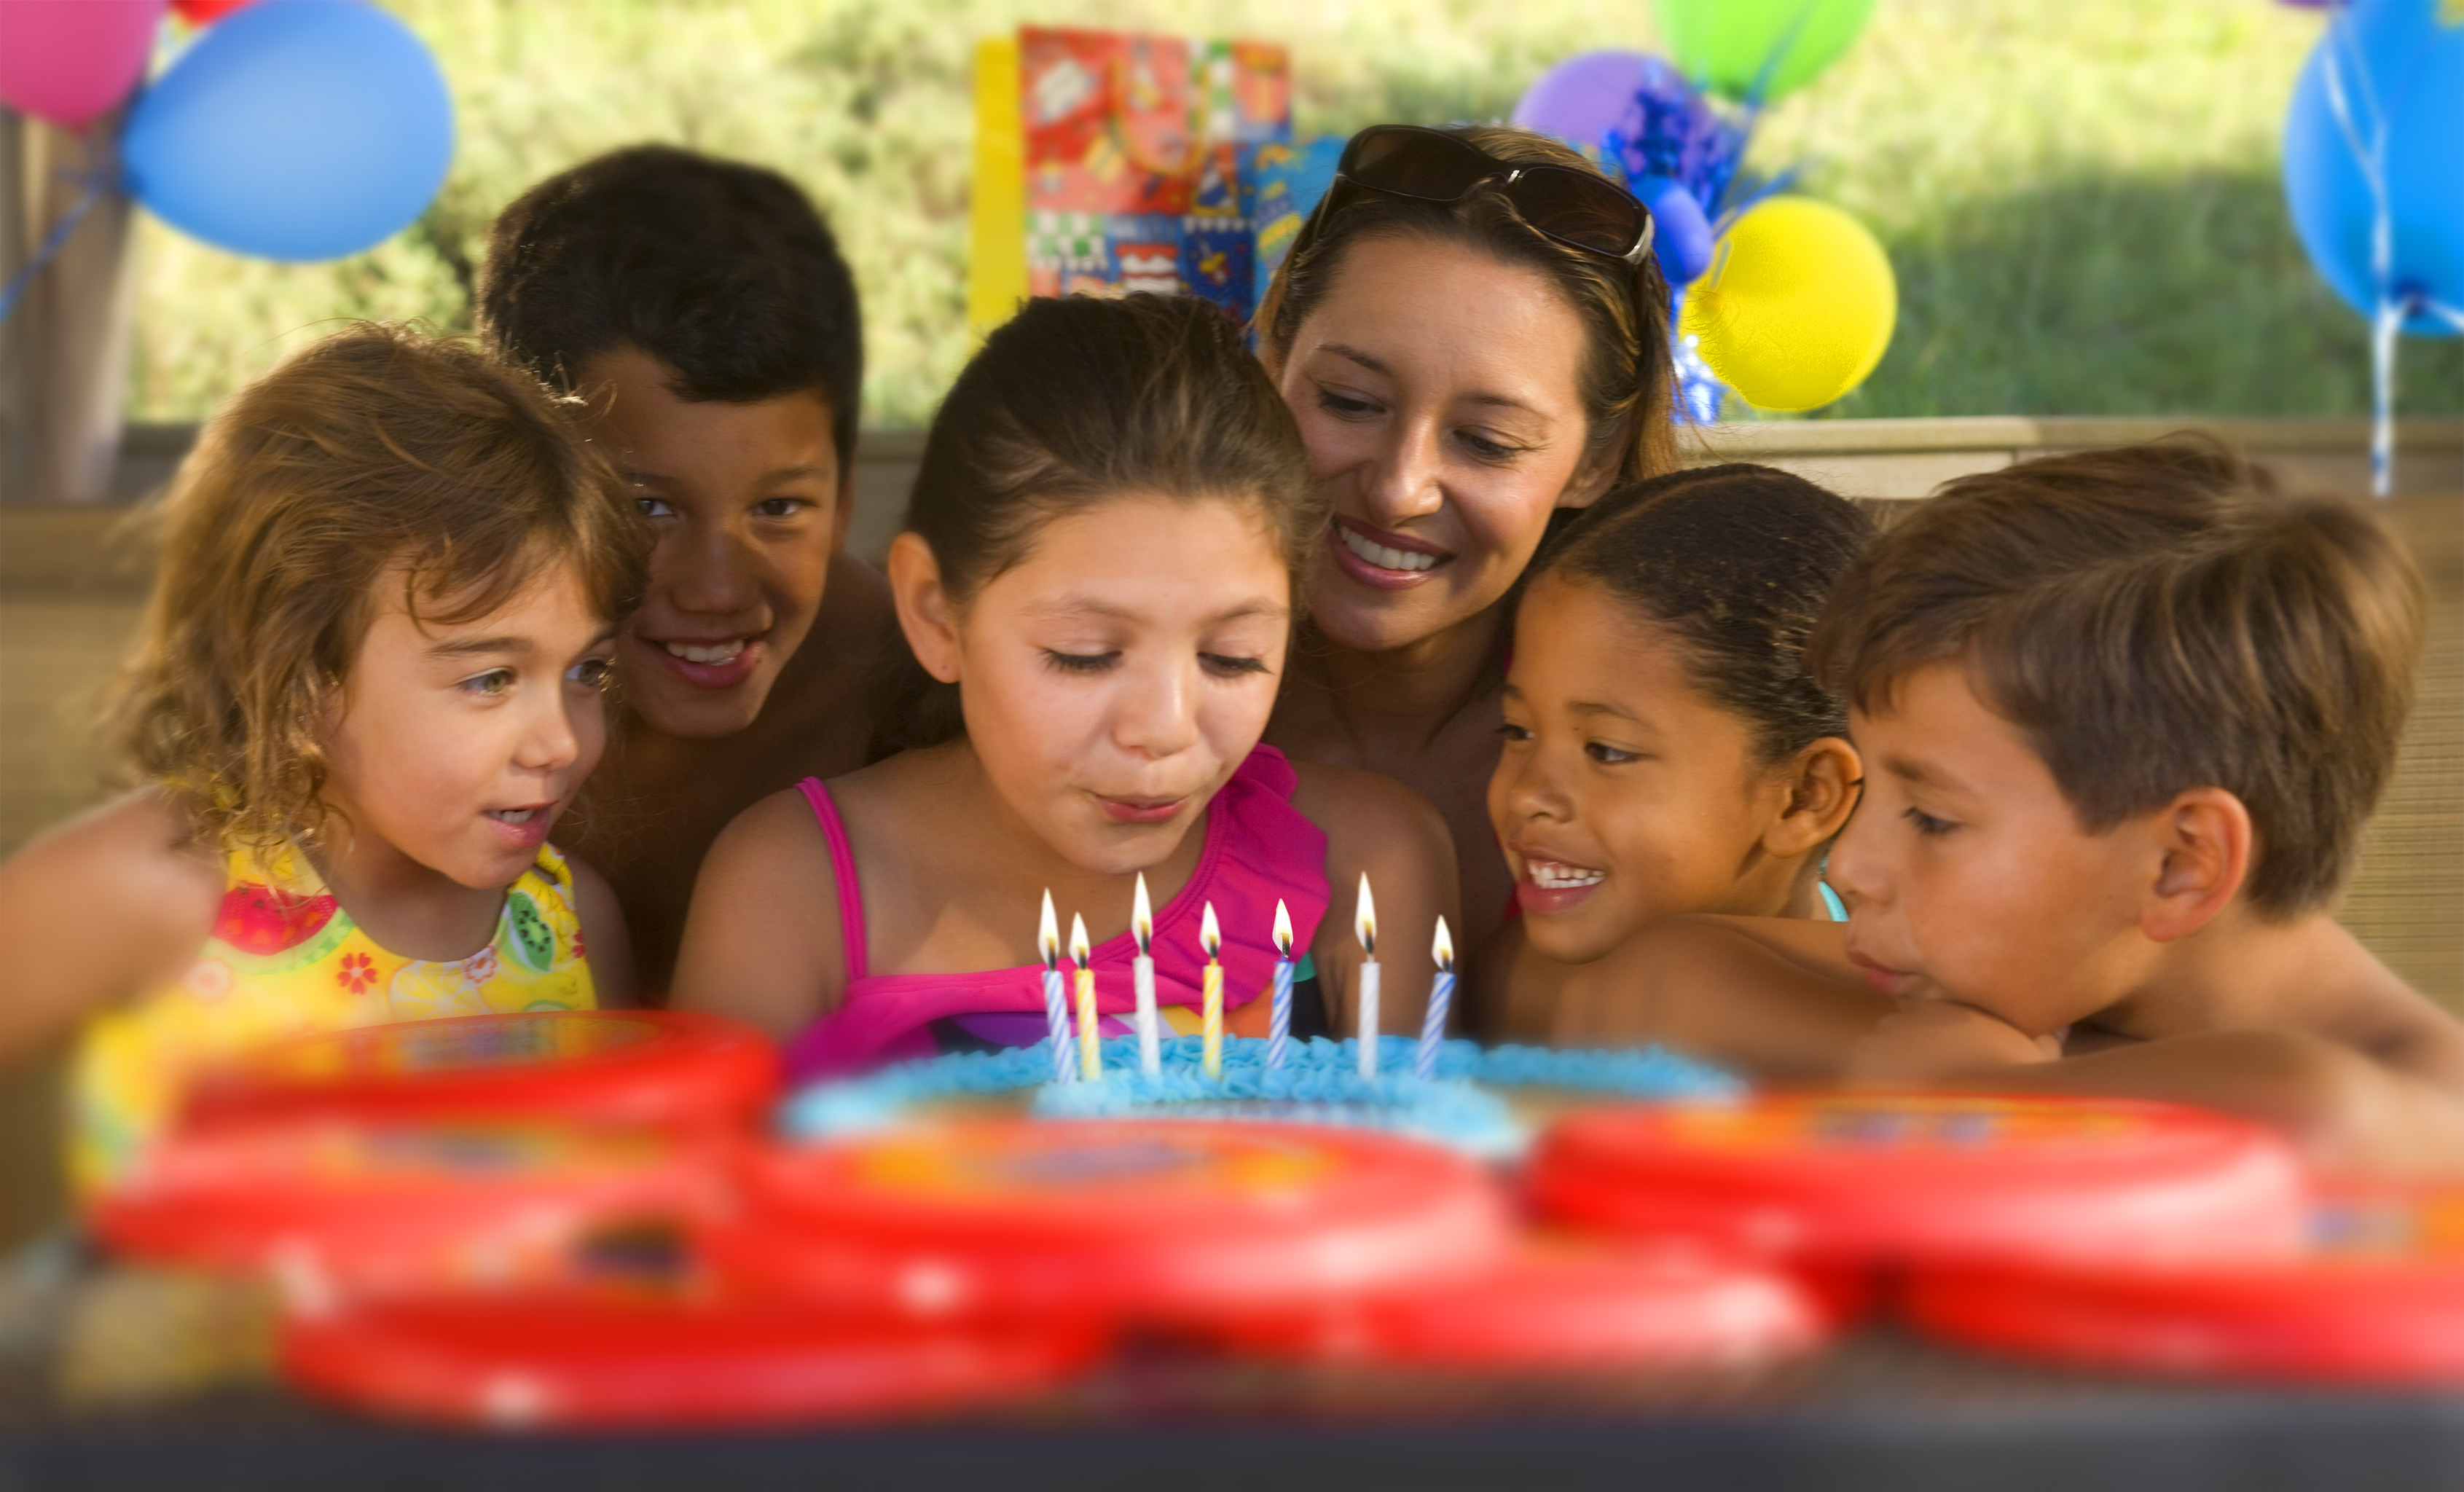 kids and a mom gathered around a cookie cake while the birthday kid blows out candles.